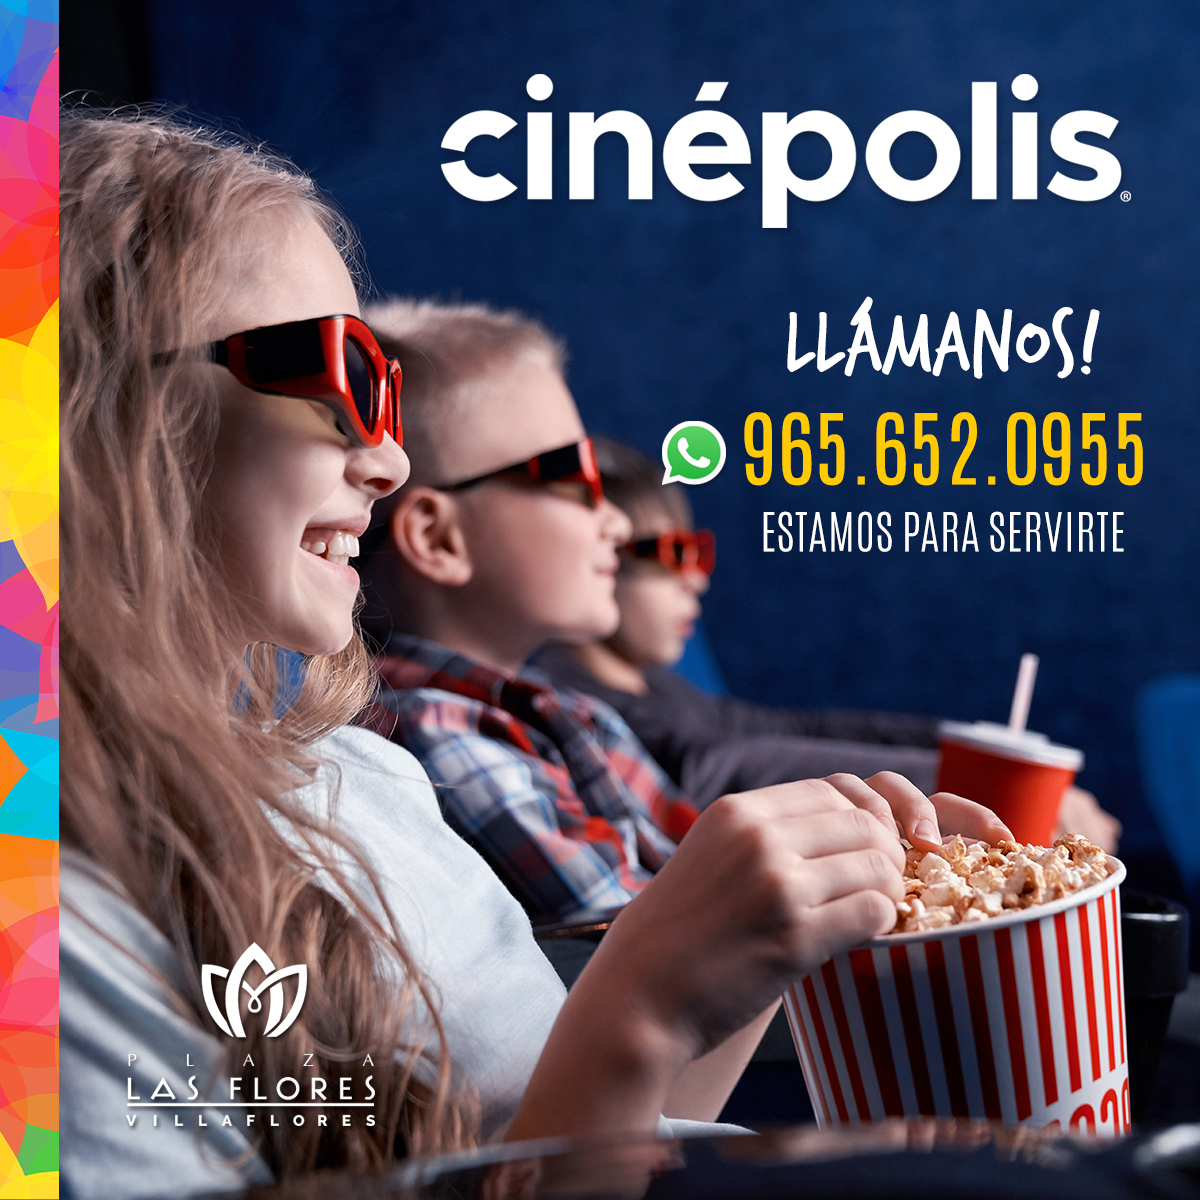 LasFlores-Telefonos-Cinepolis copy